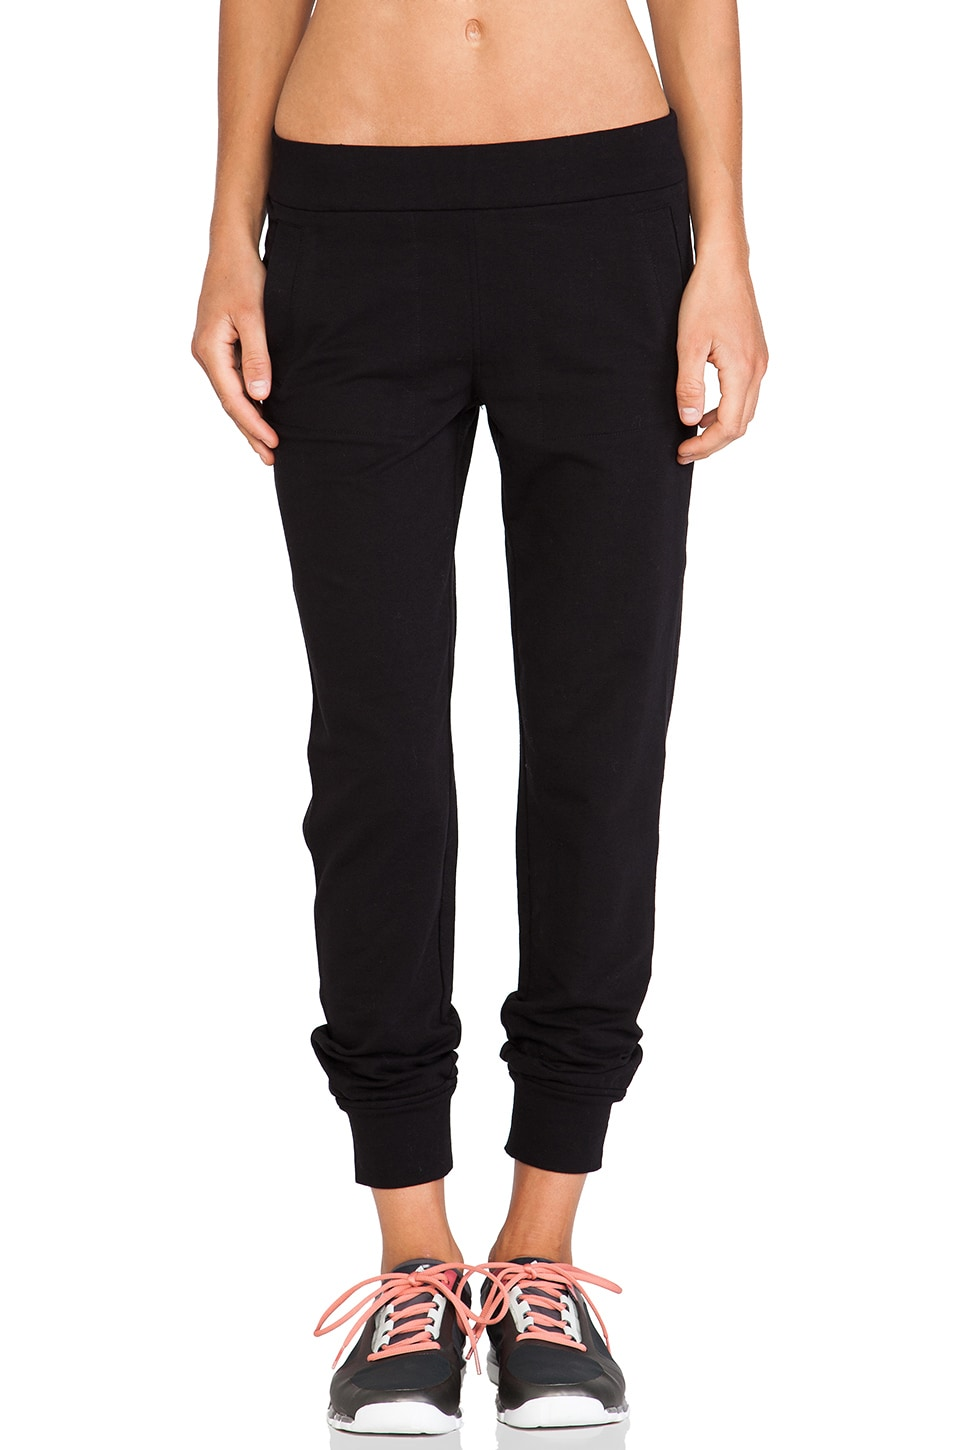 Norma Kamali Jog Pants in Black